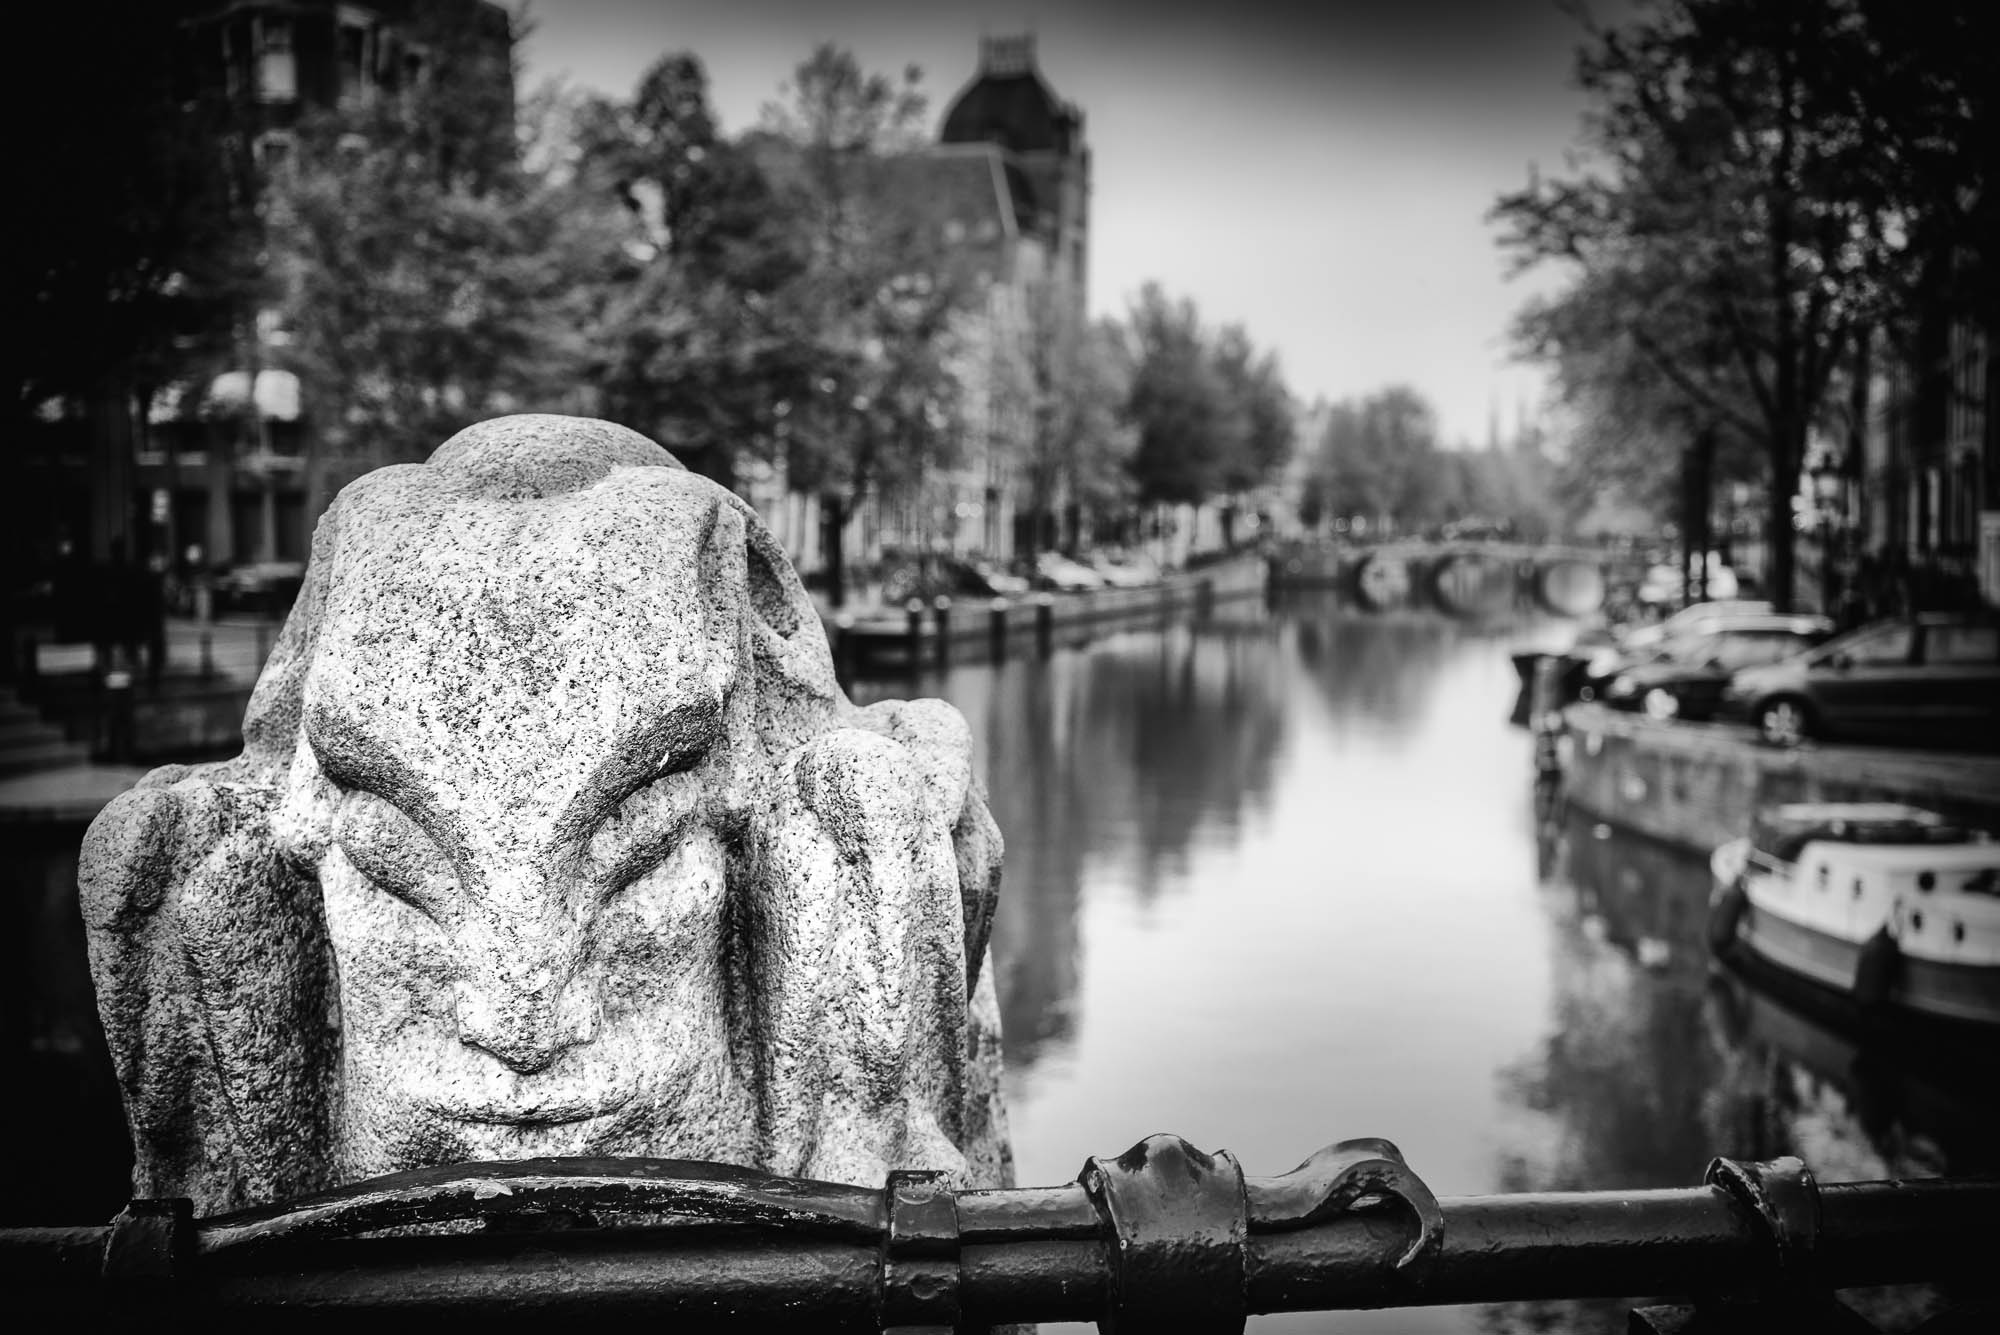 Odd looking bridge face ornament in Amsterdam